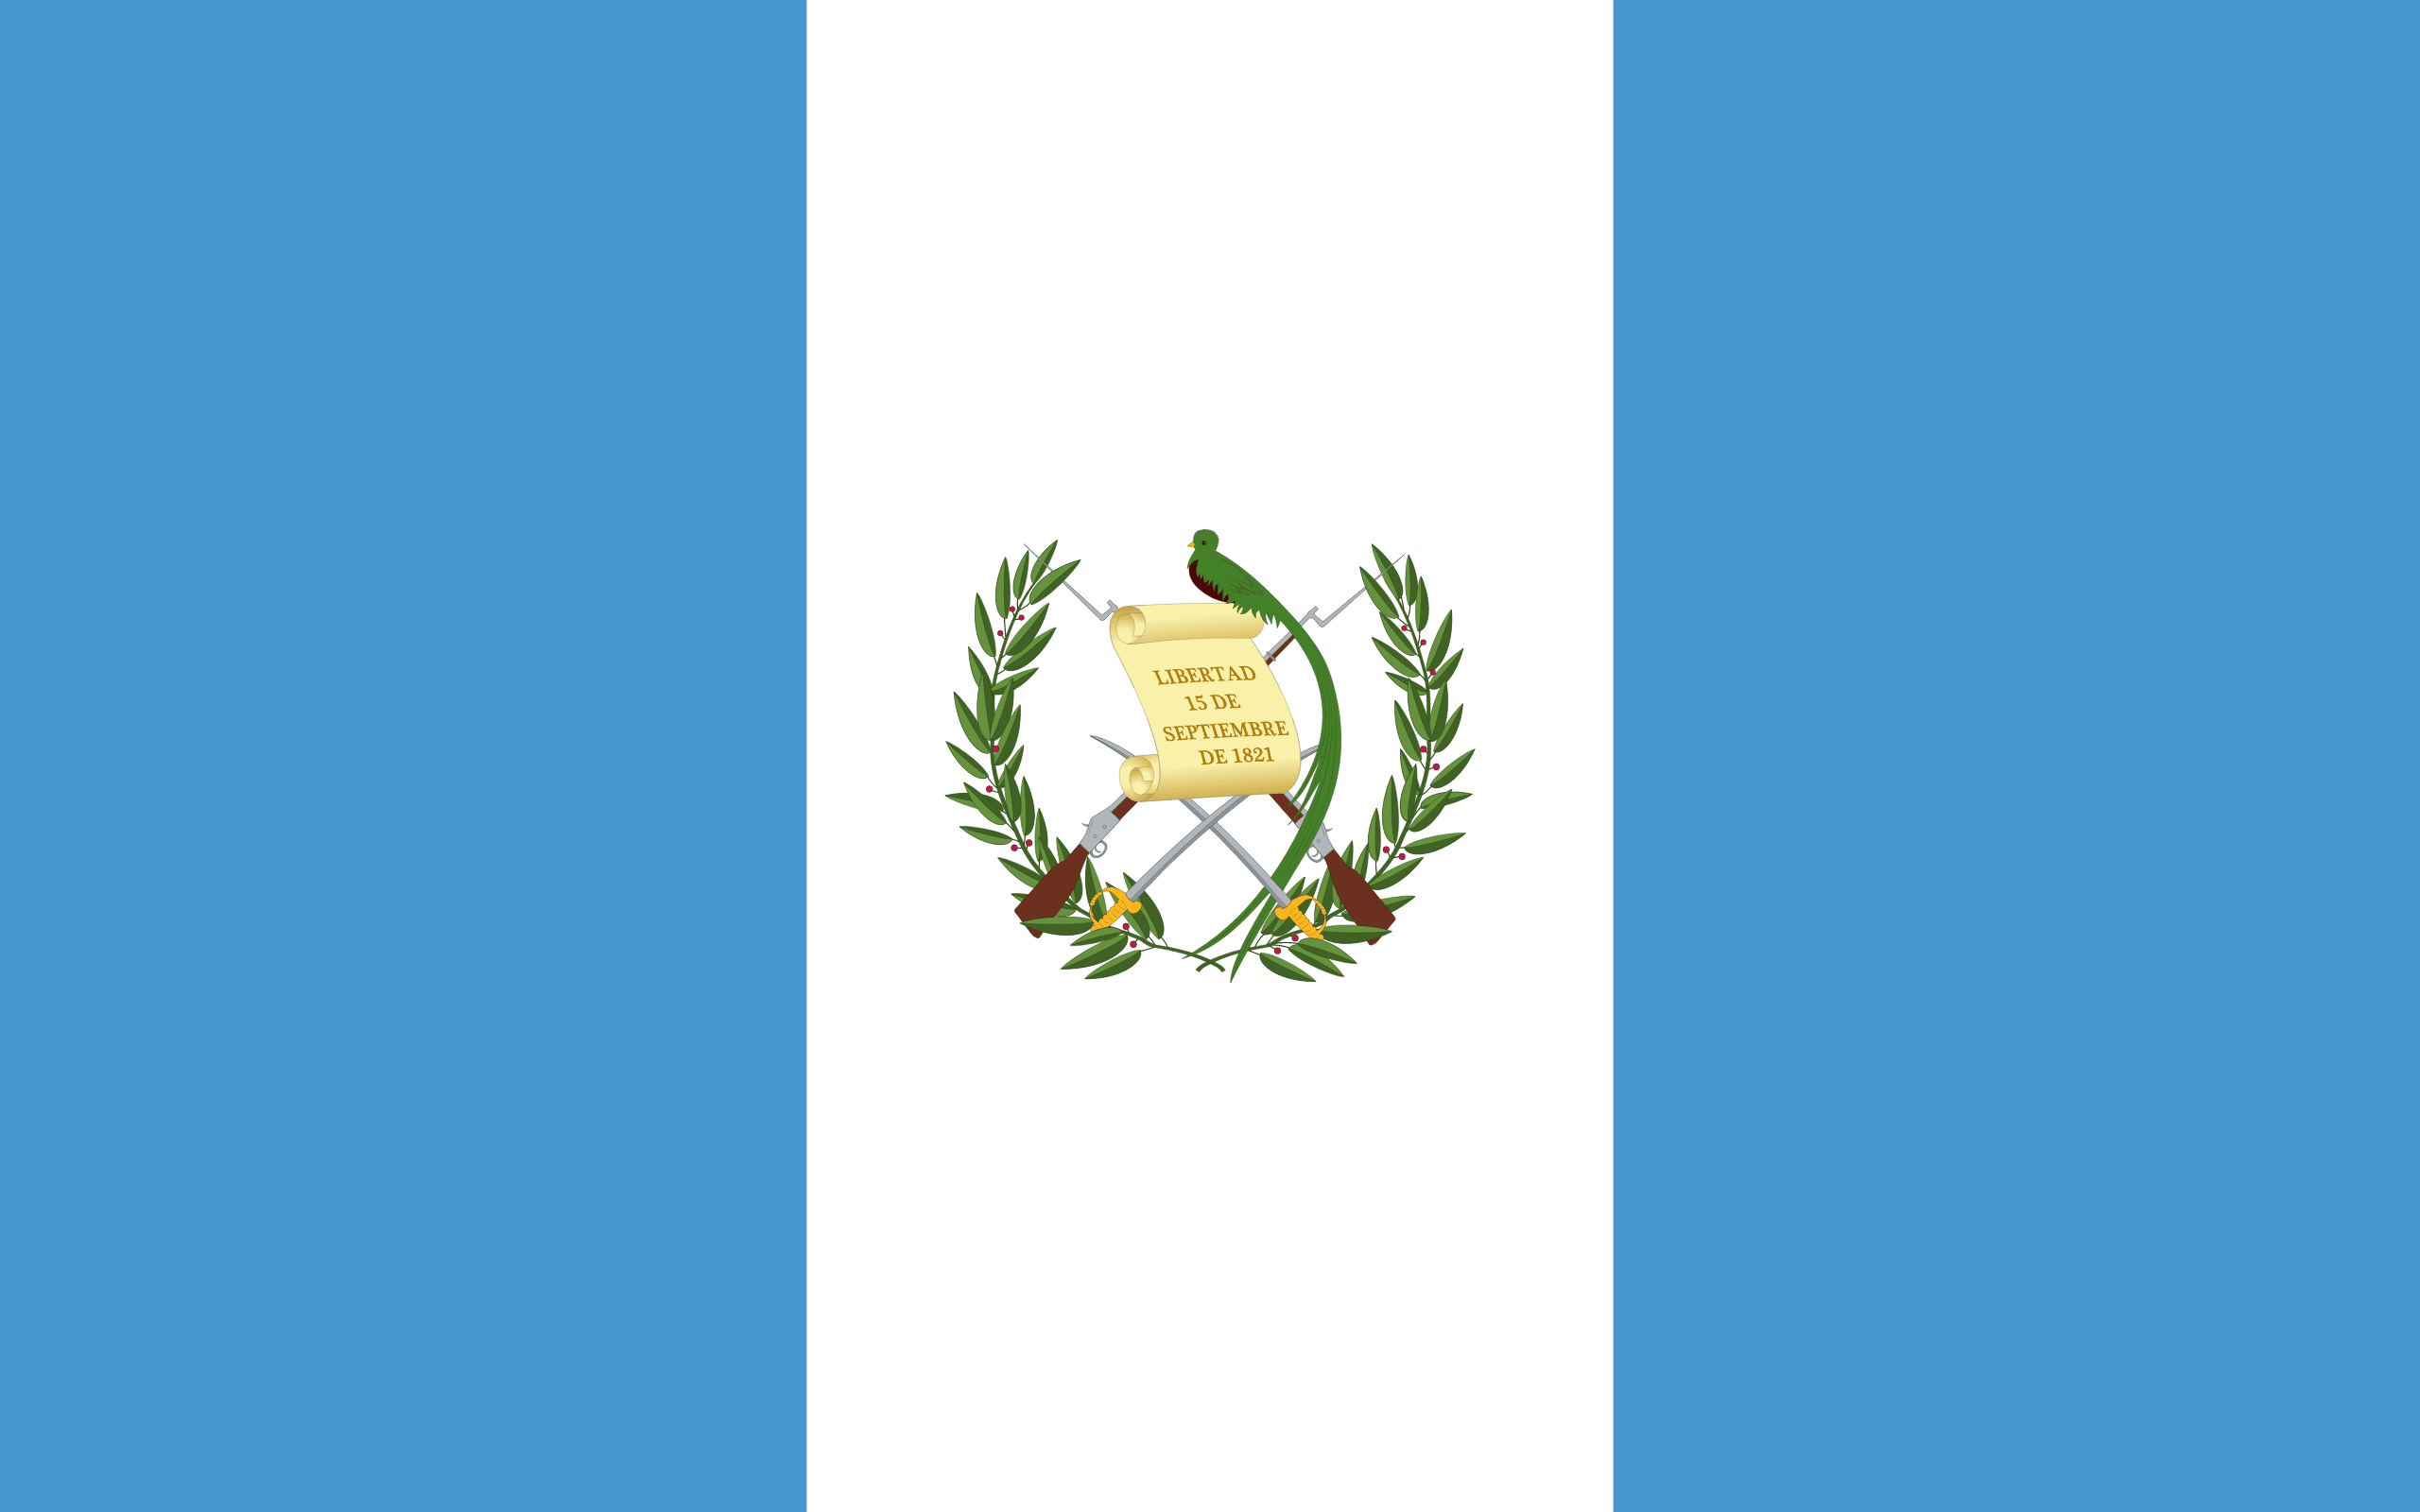 guatemala flags of countries